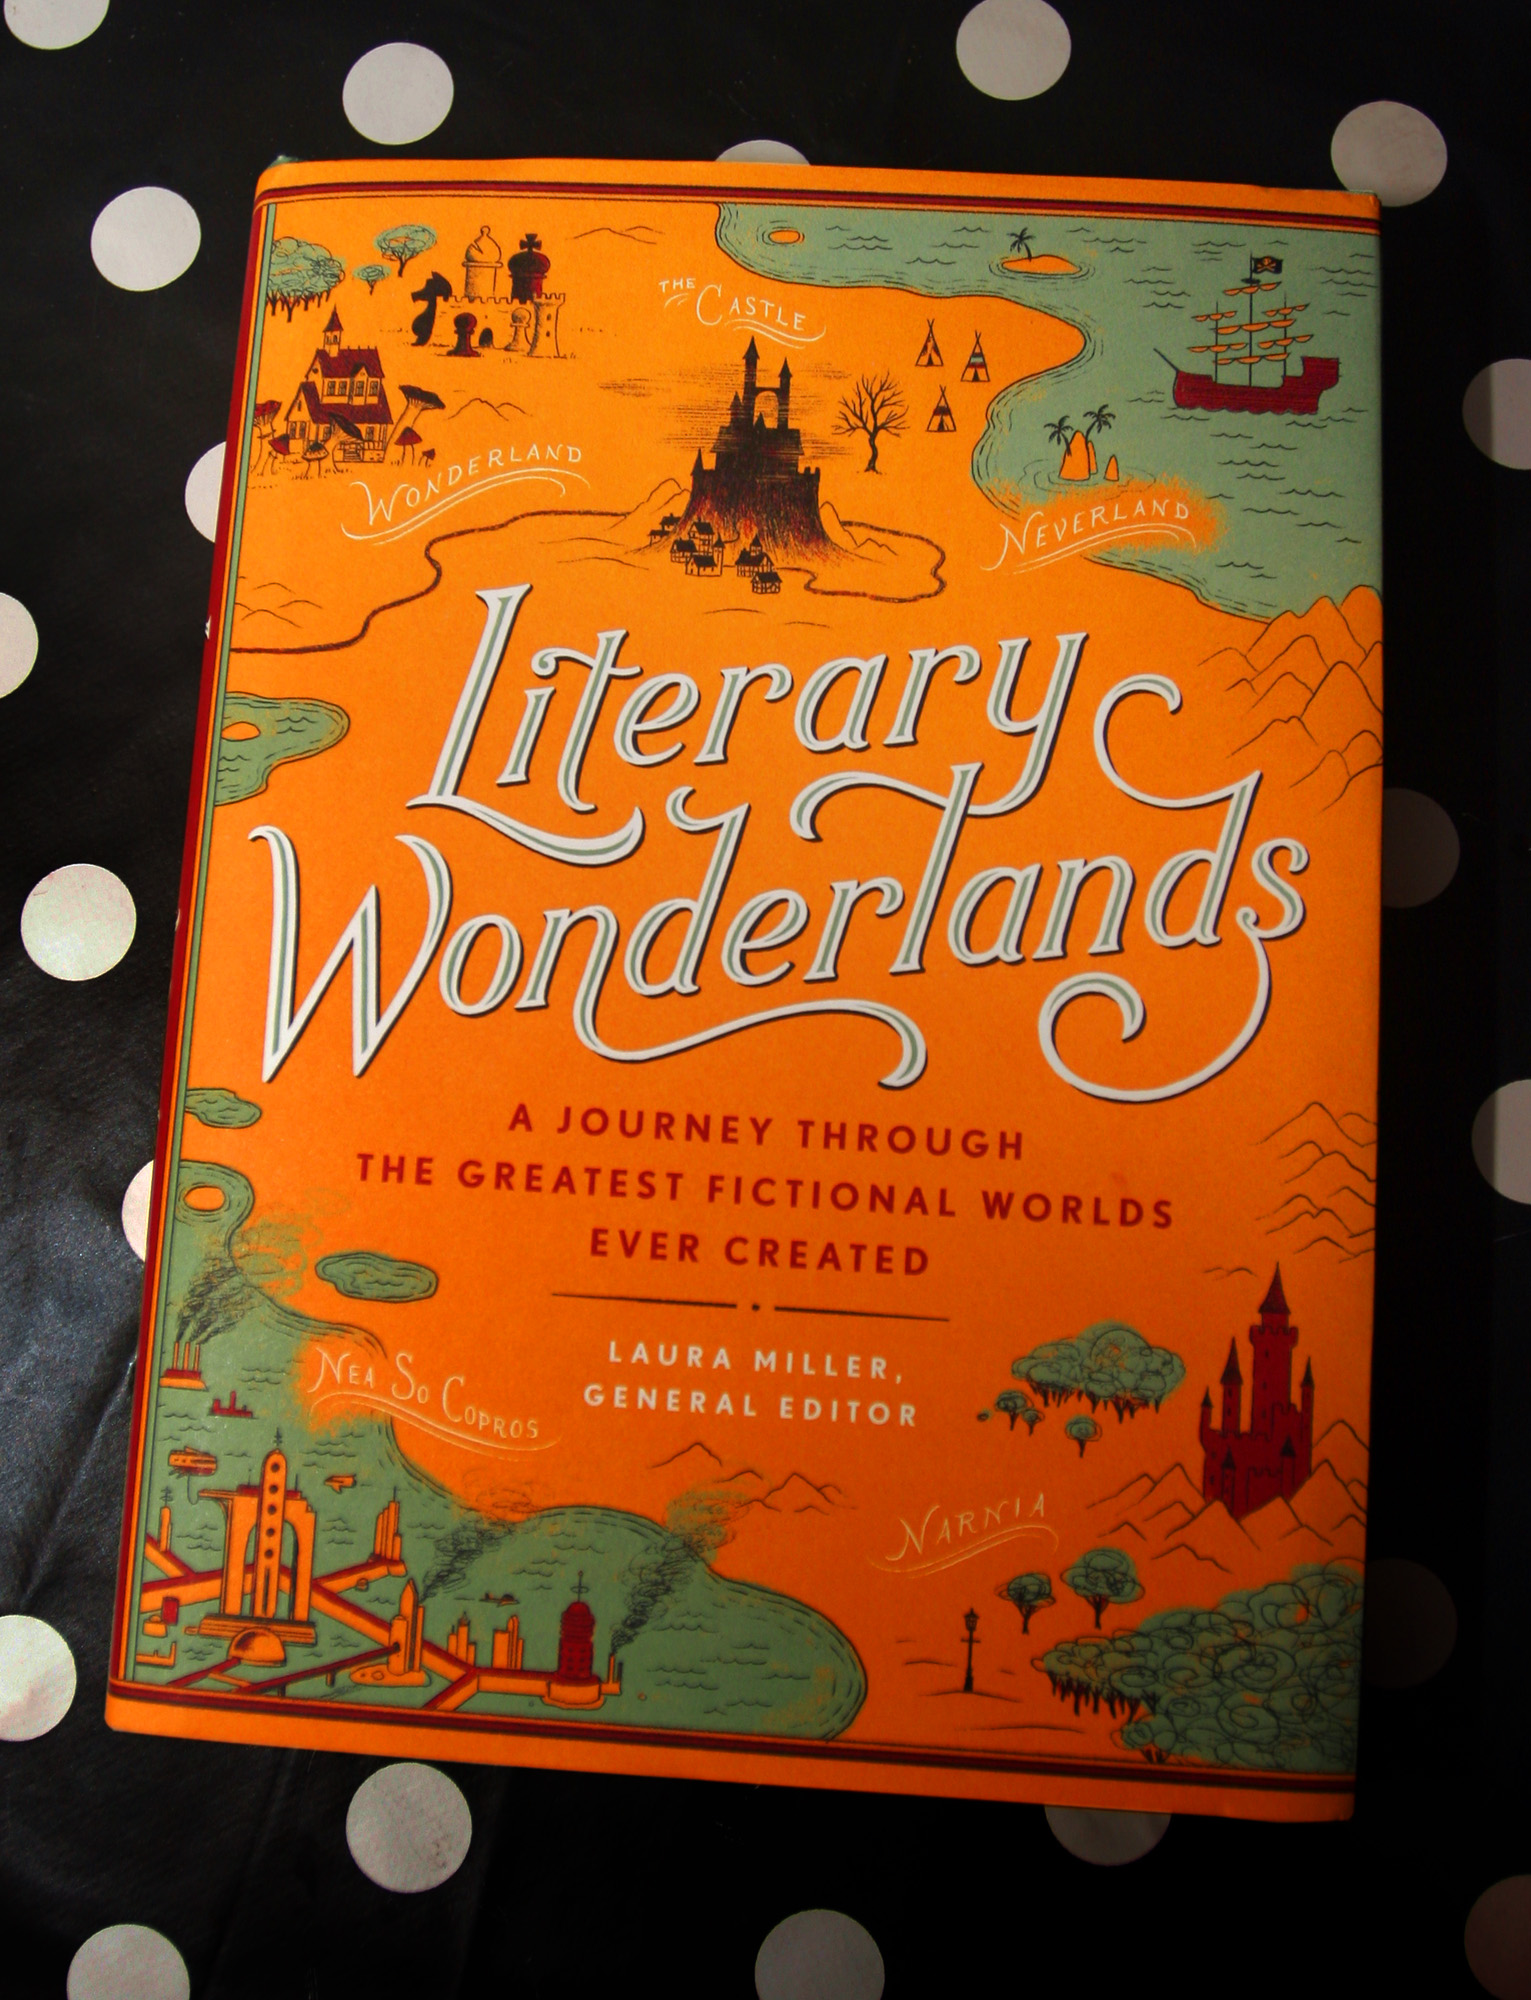 Artwork Published in 'Literary Wonderlands' Book